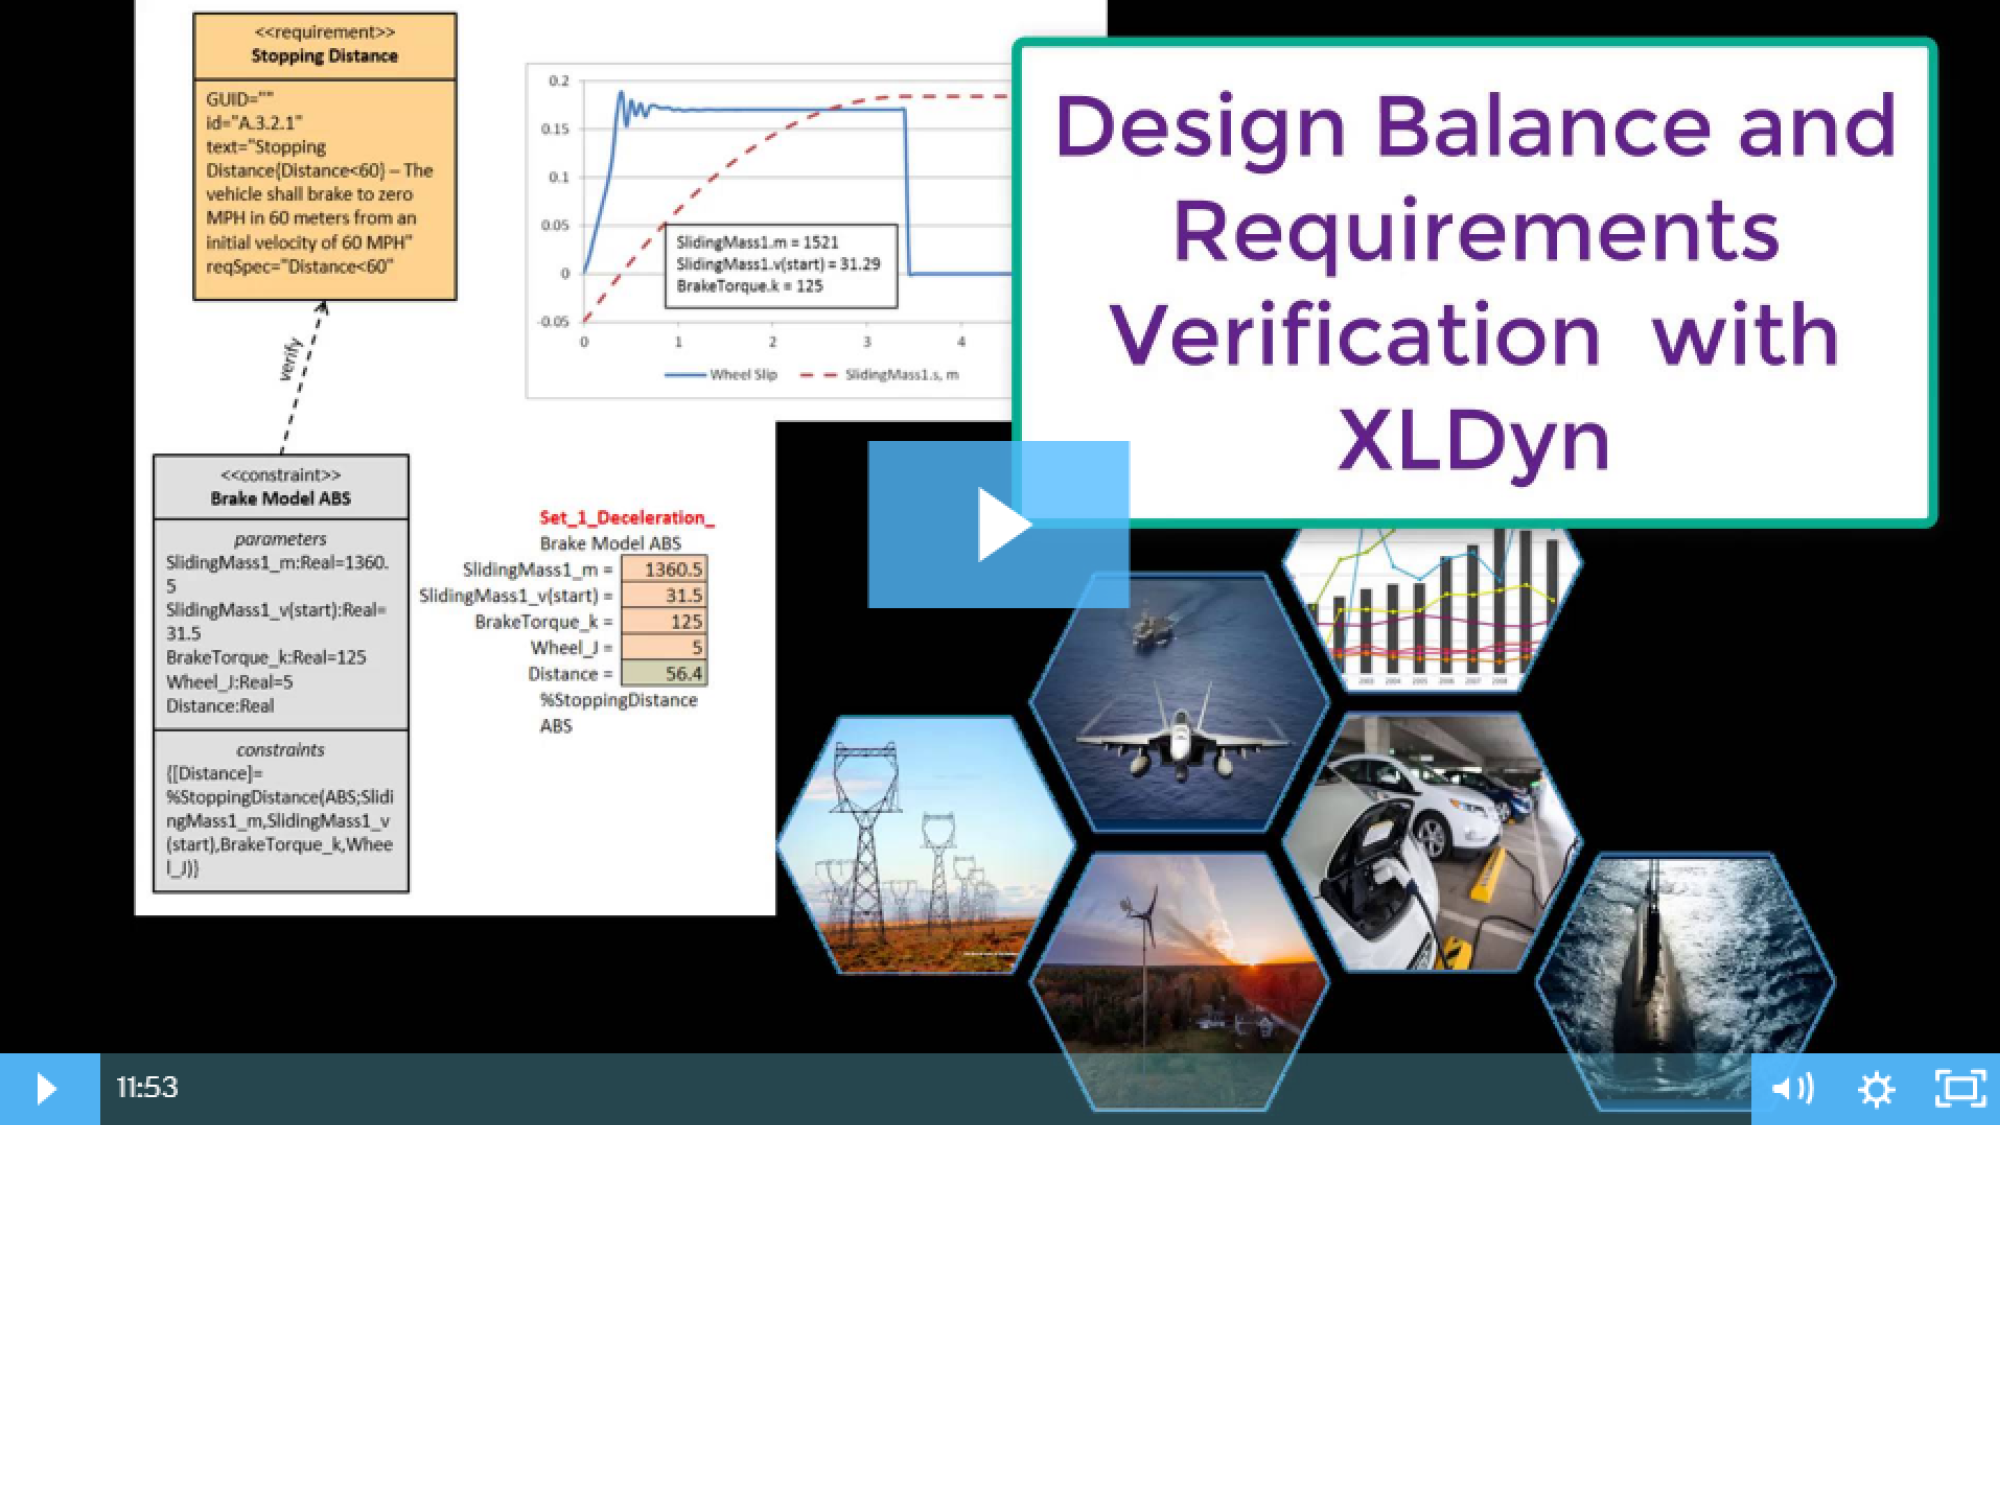 Design Balance and Requirements Verification with XLDyn